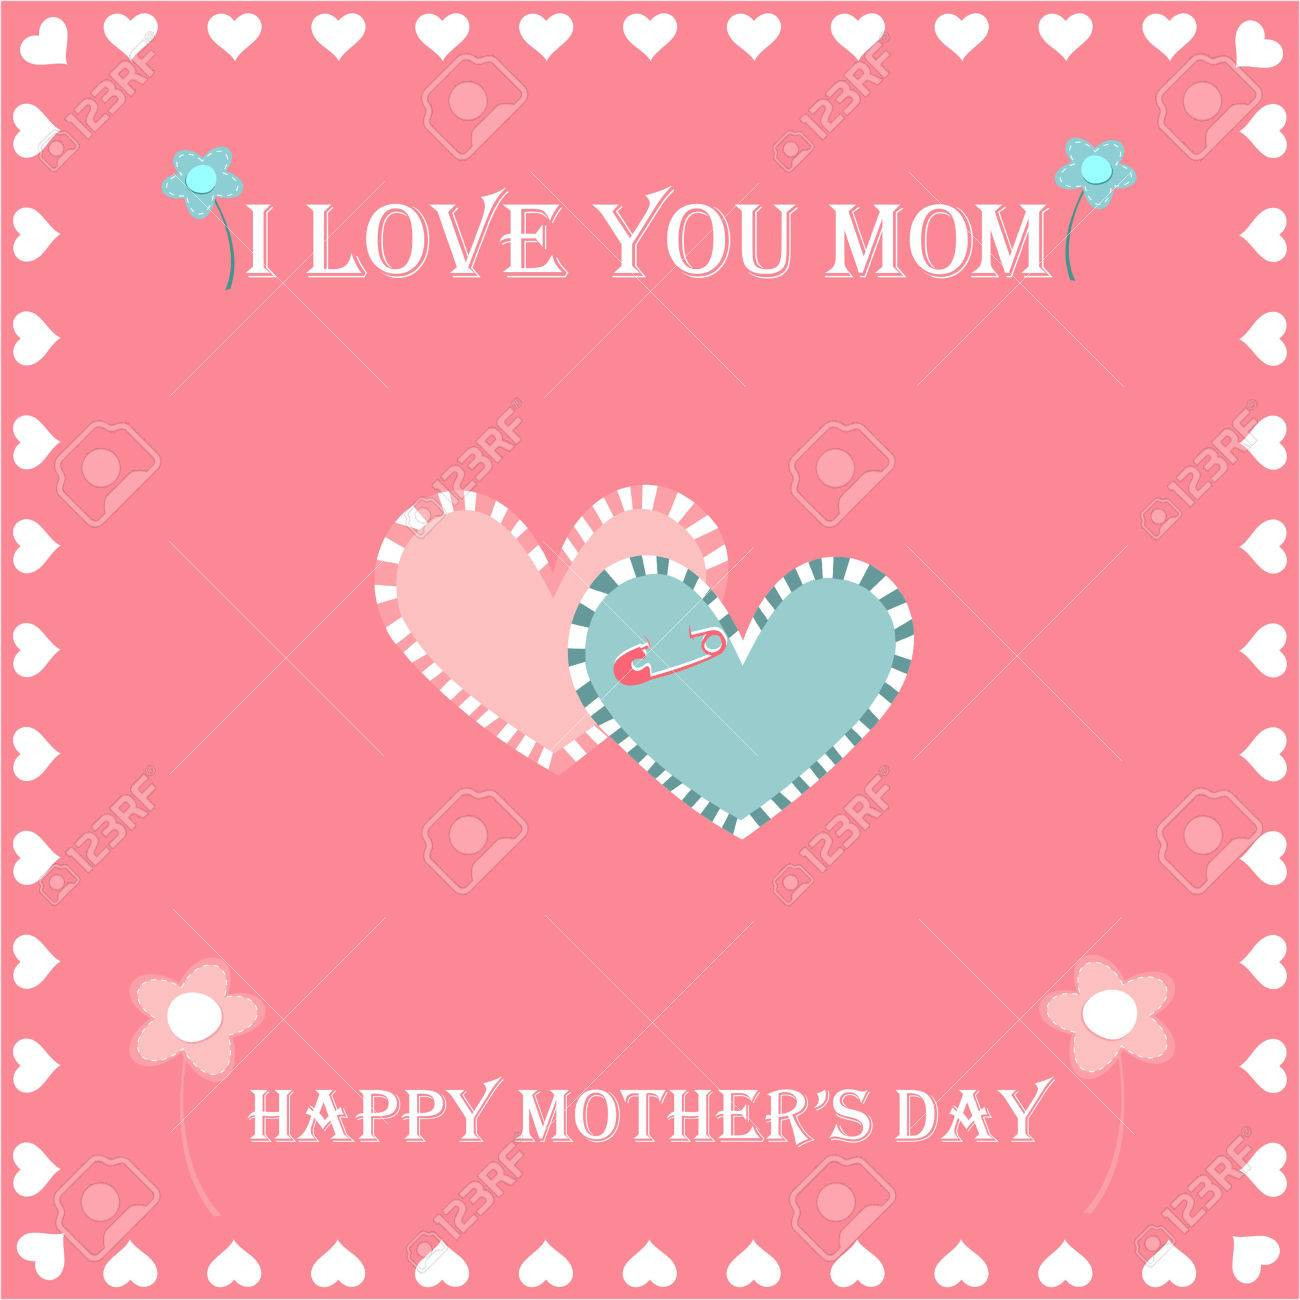 Happy Mothers Day Greeting Card Greeting Cards And Flowers